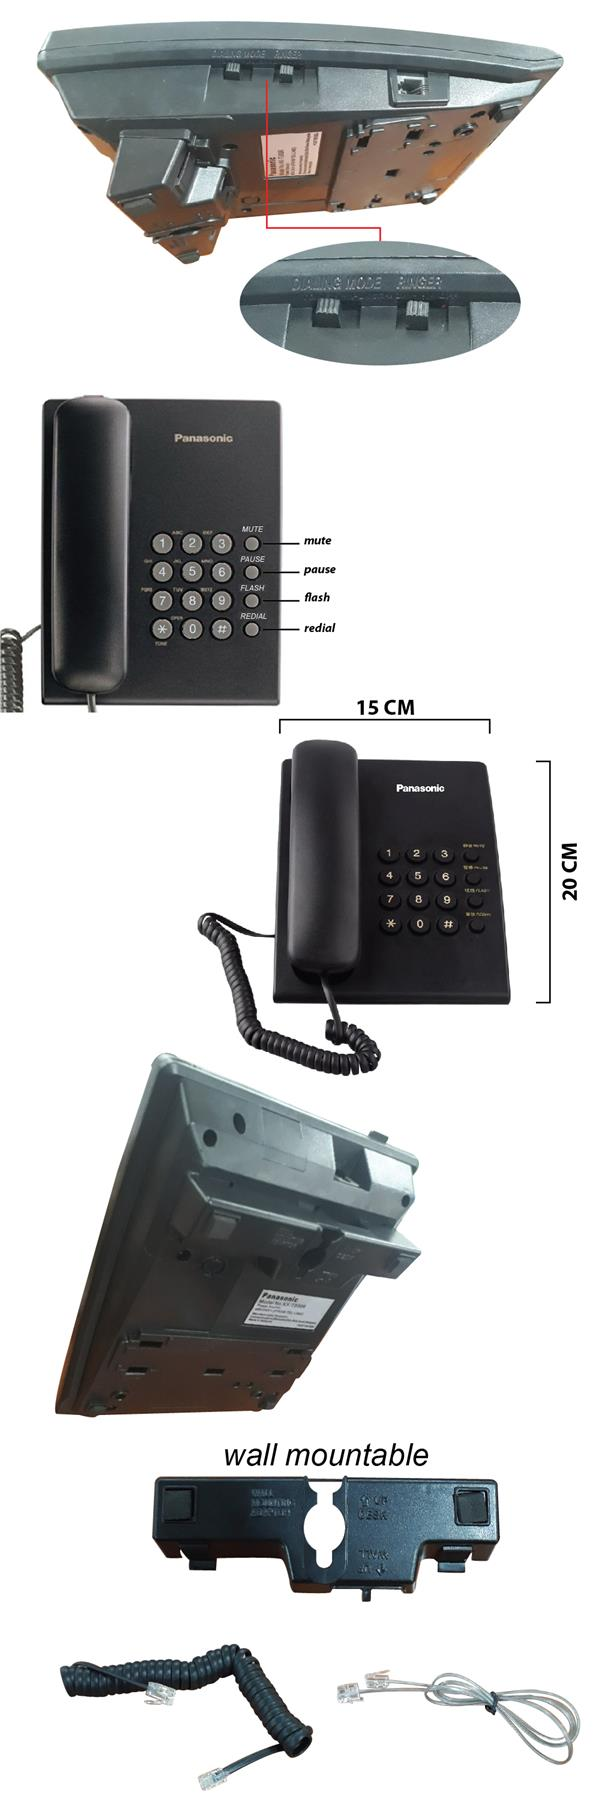 Integrated Telephone System KX-TS50 (end 11/22/2018 4:15 PM)